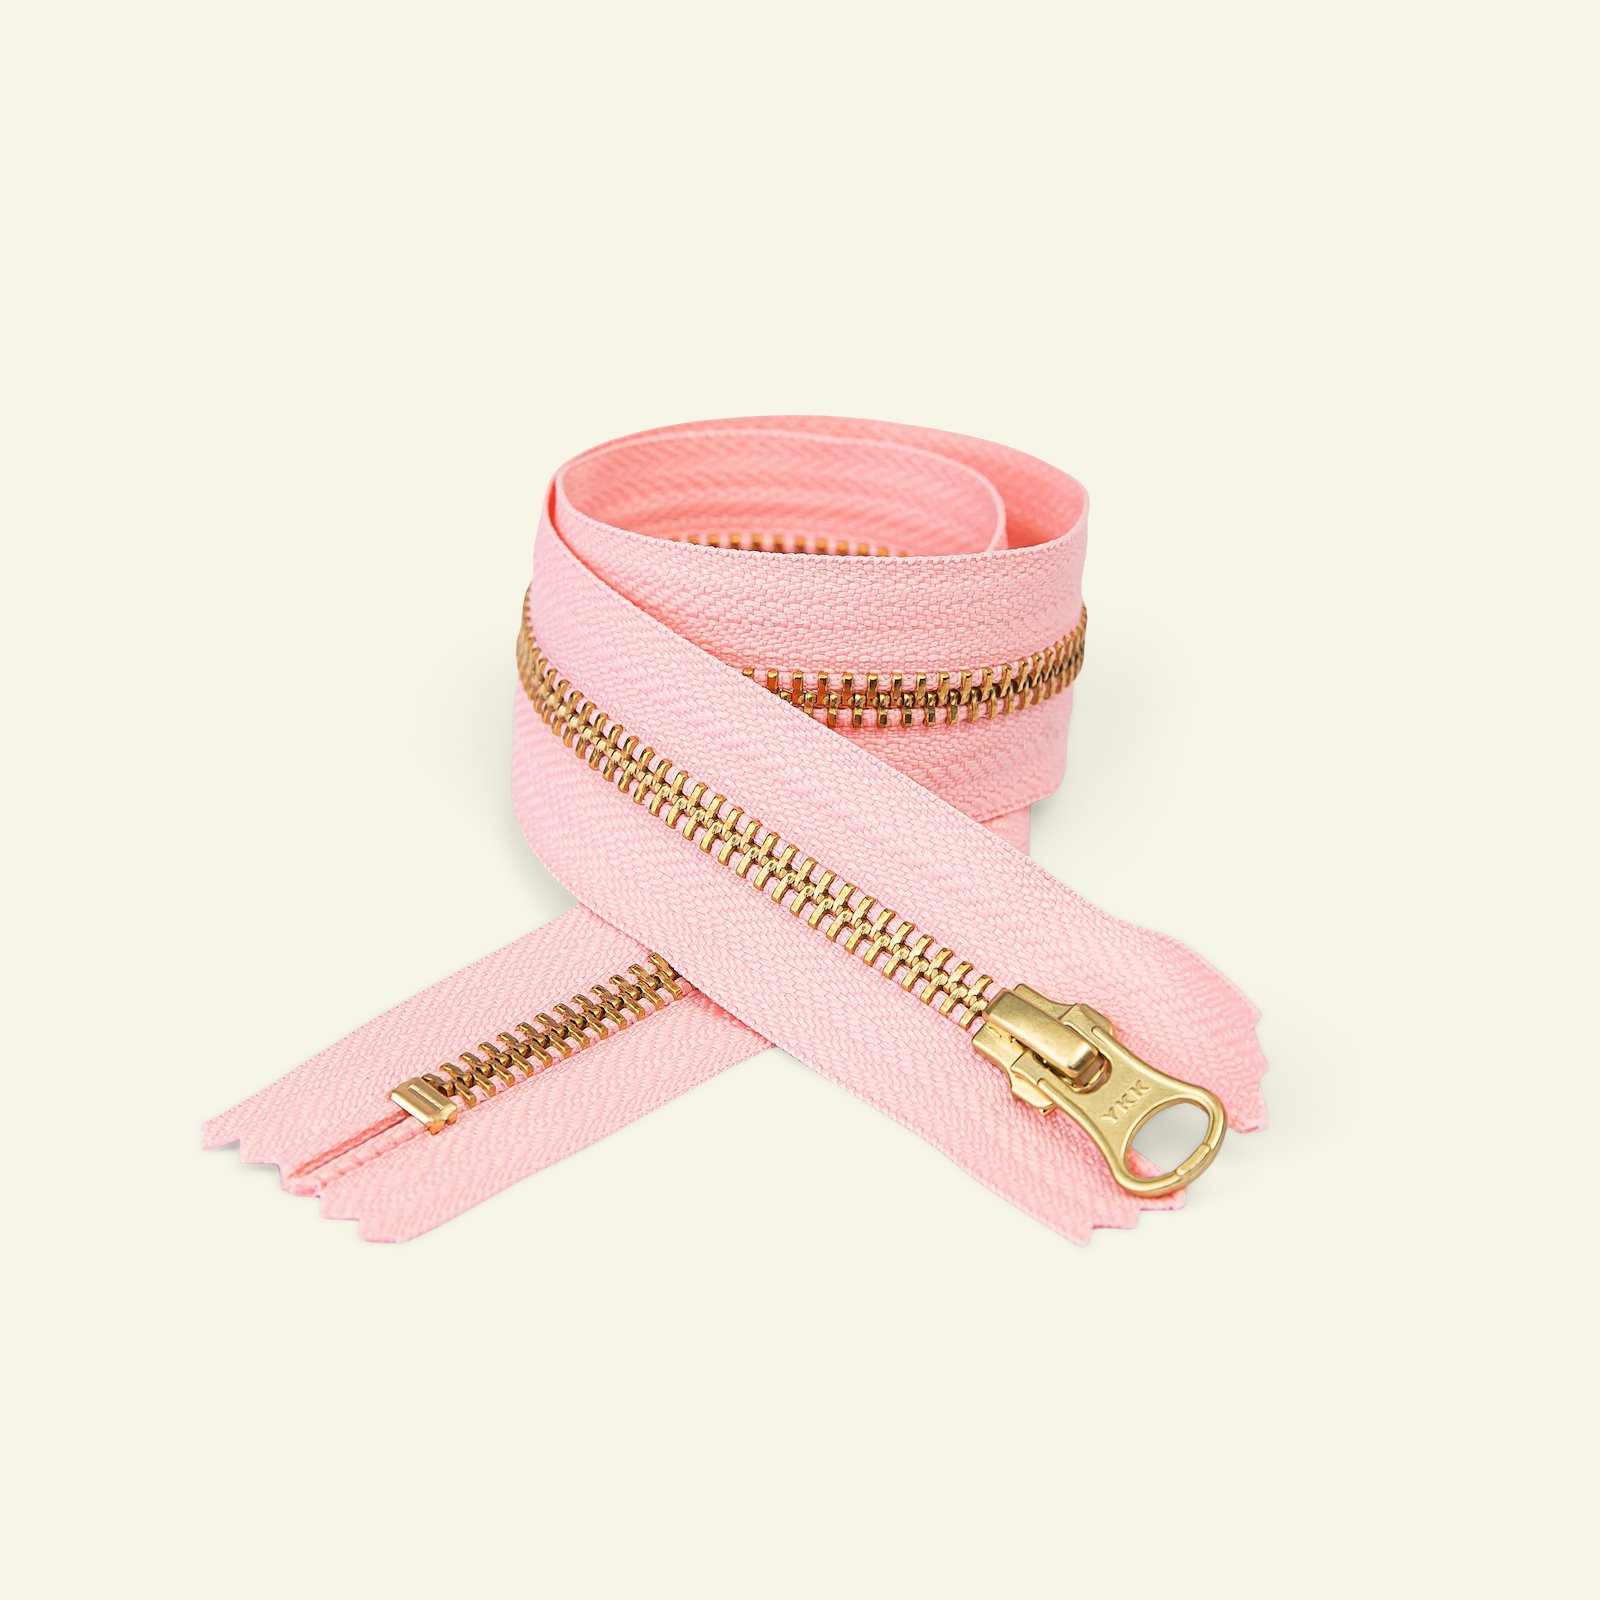 YKK zip 6mm closed end 15cm pink/gold x59308_pack